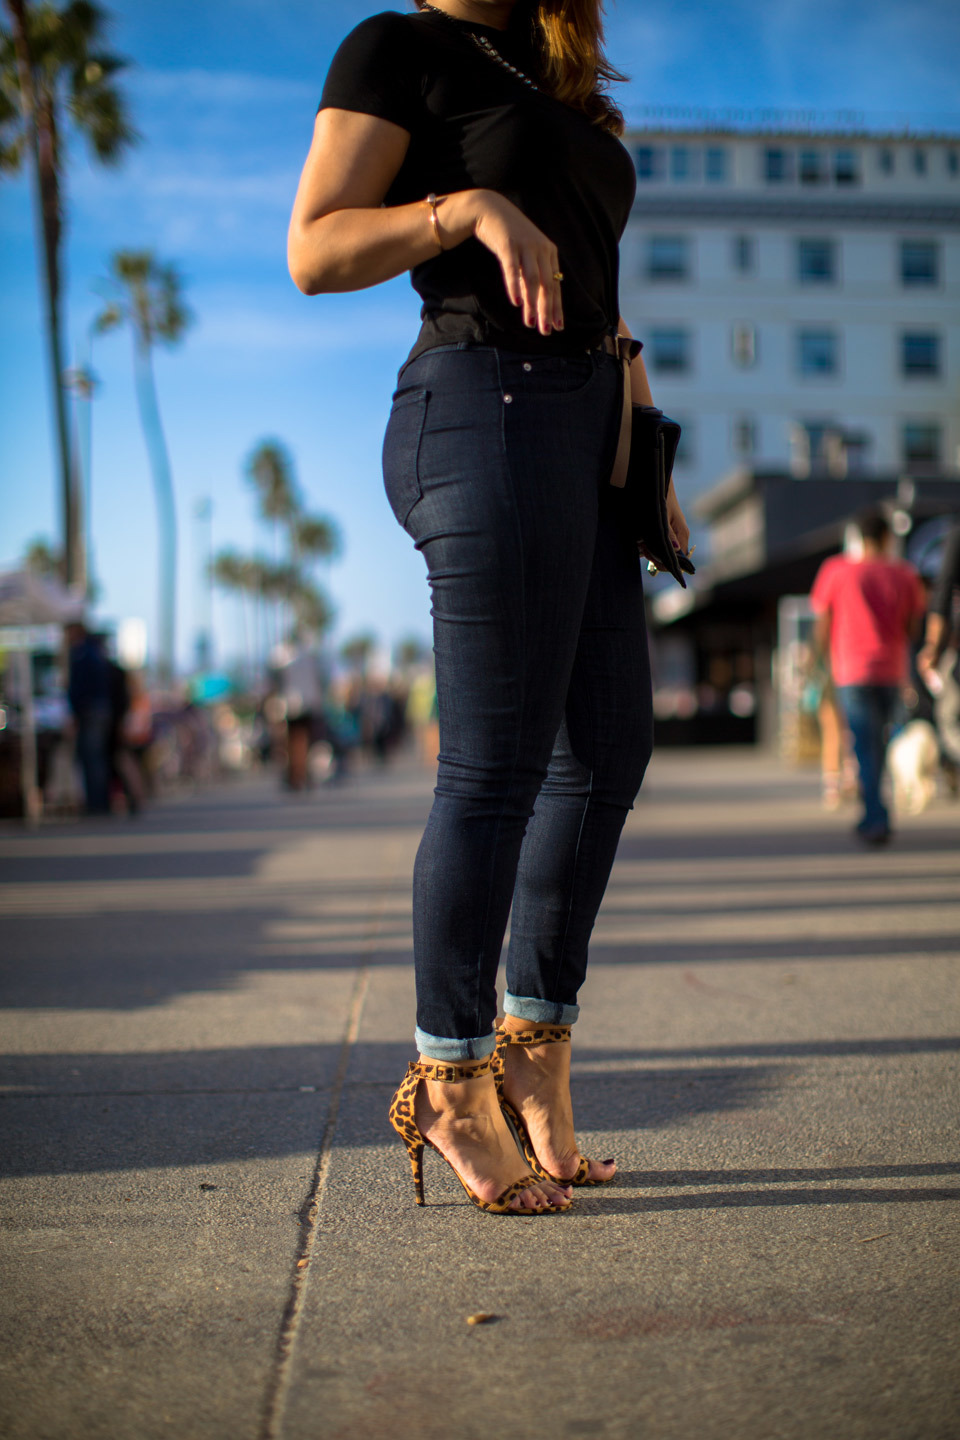 christina-topacio-fashion-blogger-los-angeles-sabrina-noel-hill-photographer-venice-beach-10.jpg